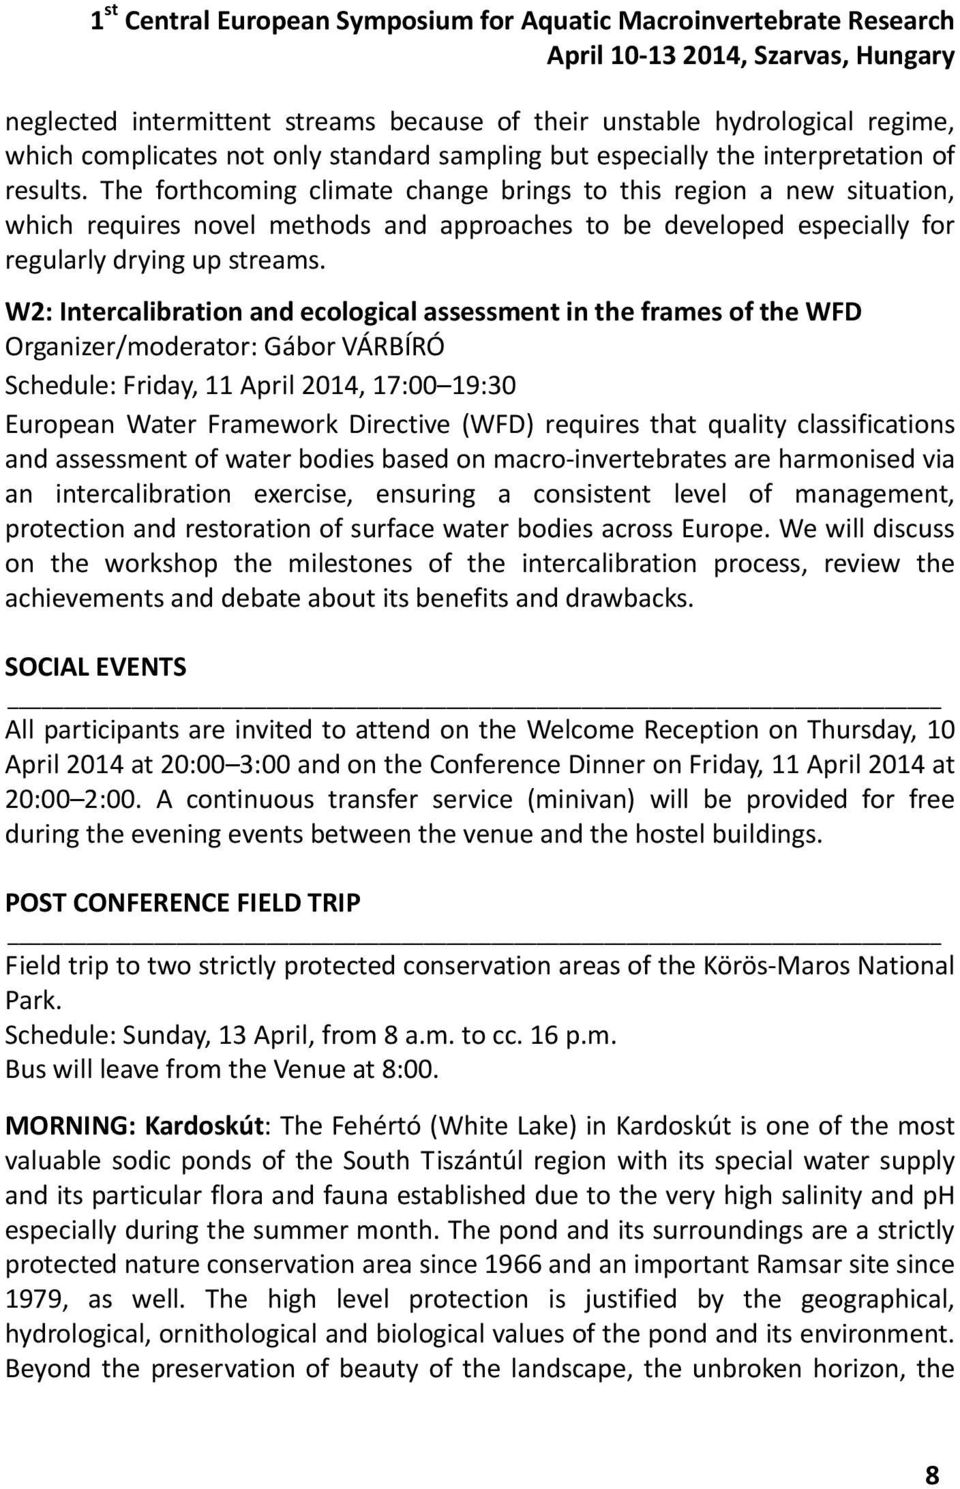 W2: Intercalibration and ecological assessment in the frames of the WFD Organizer/moderator: Gábor VÁRBÍRÓ Schedule: Friday, 11 April 2014, 17:00 19:30 European Water Framework Directive (WFD)